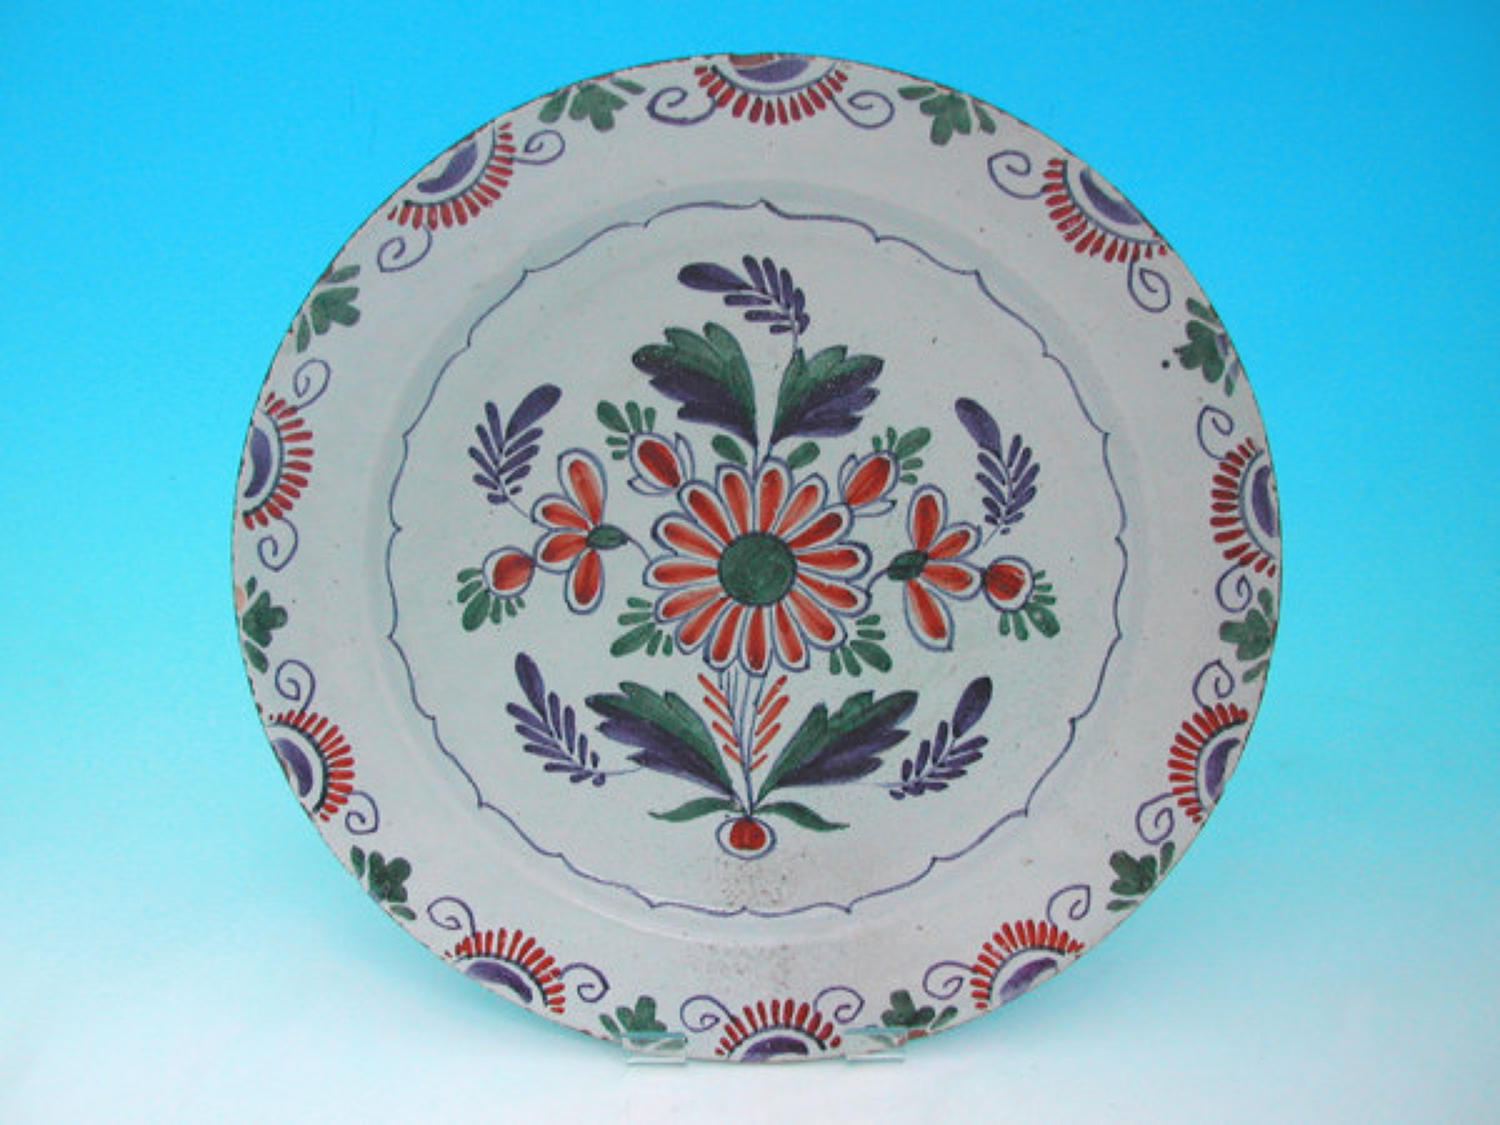 18thc Polychrome Delft charger showing flowers & geometric design. Eng